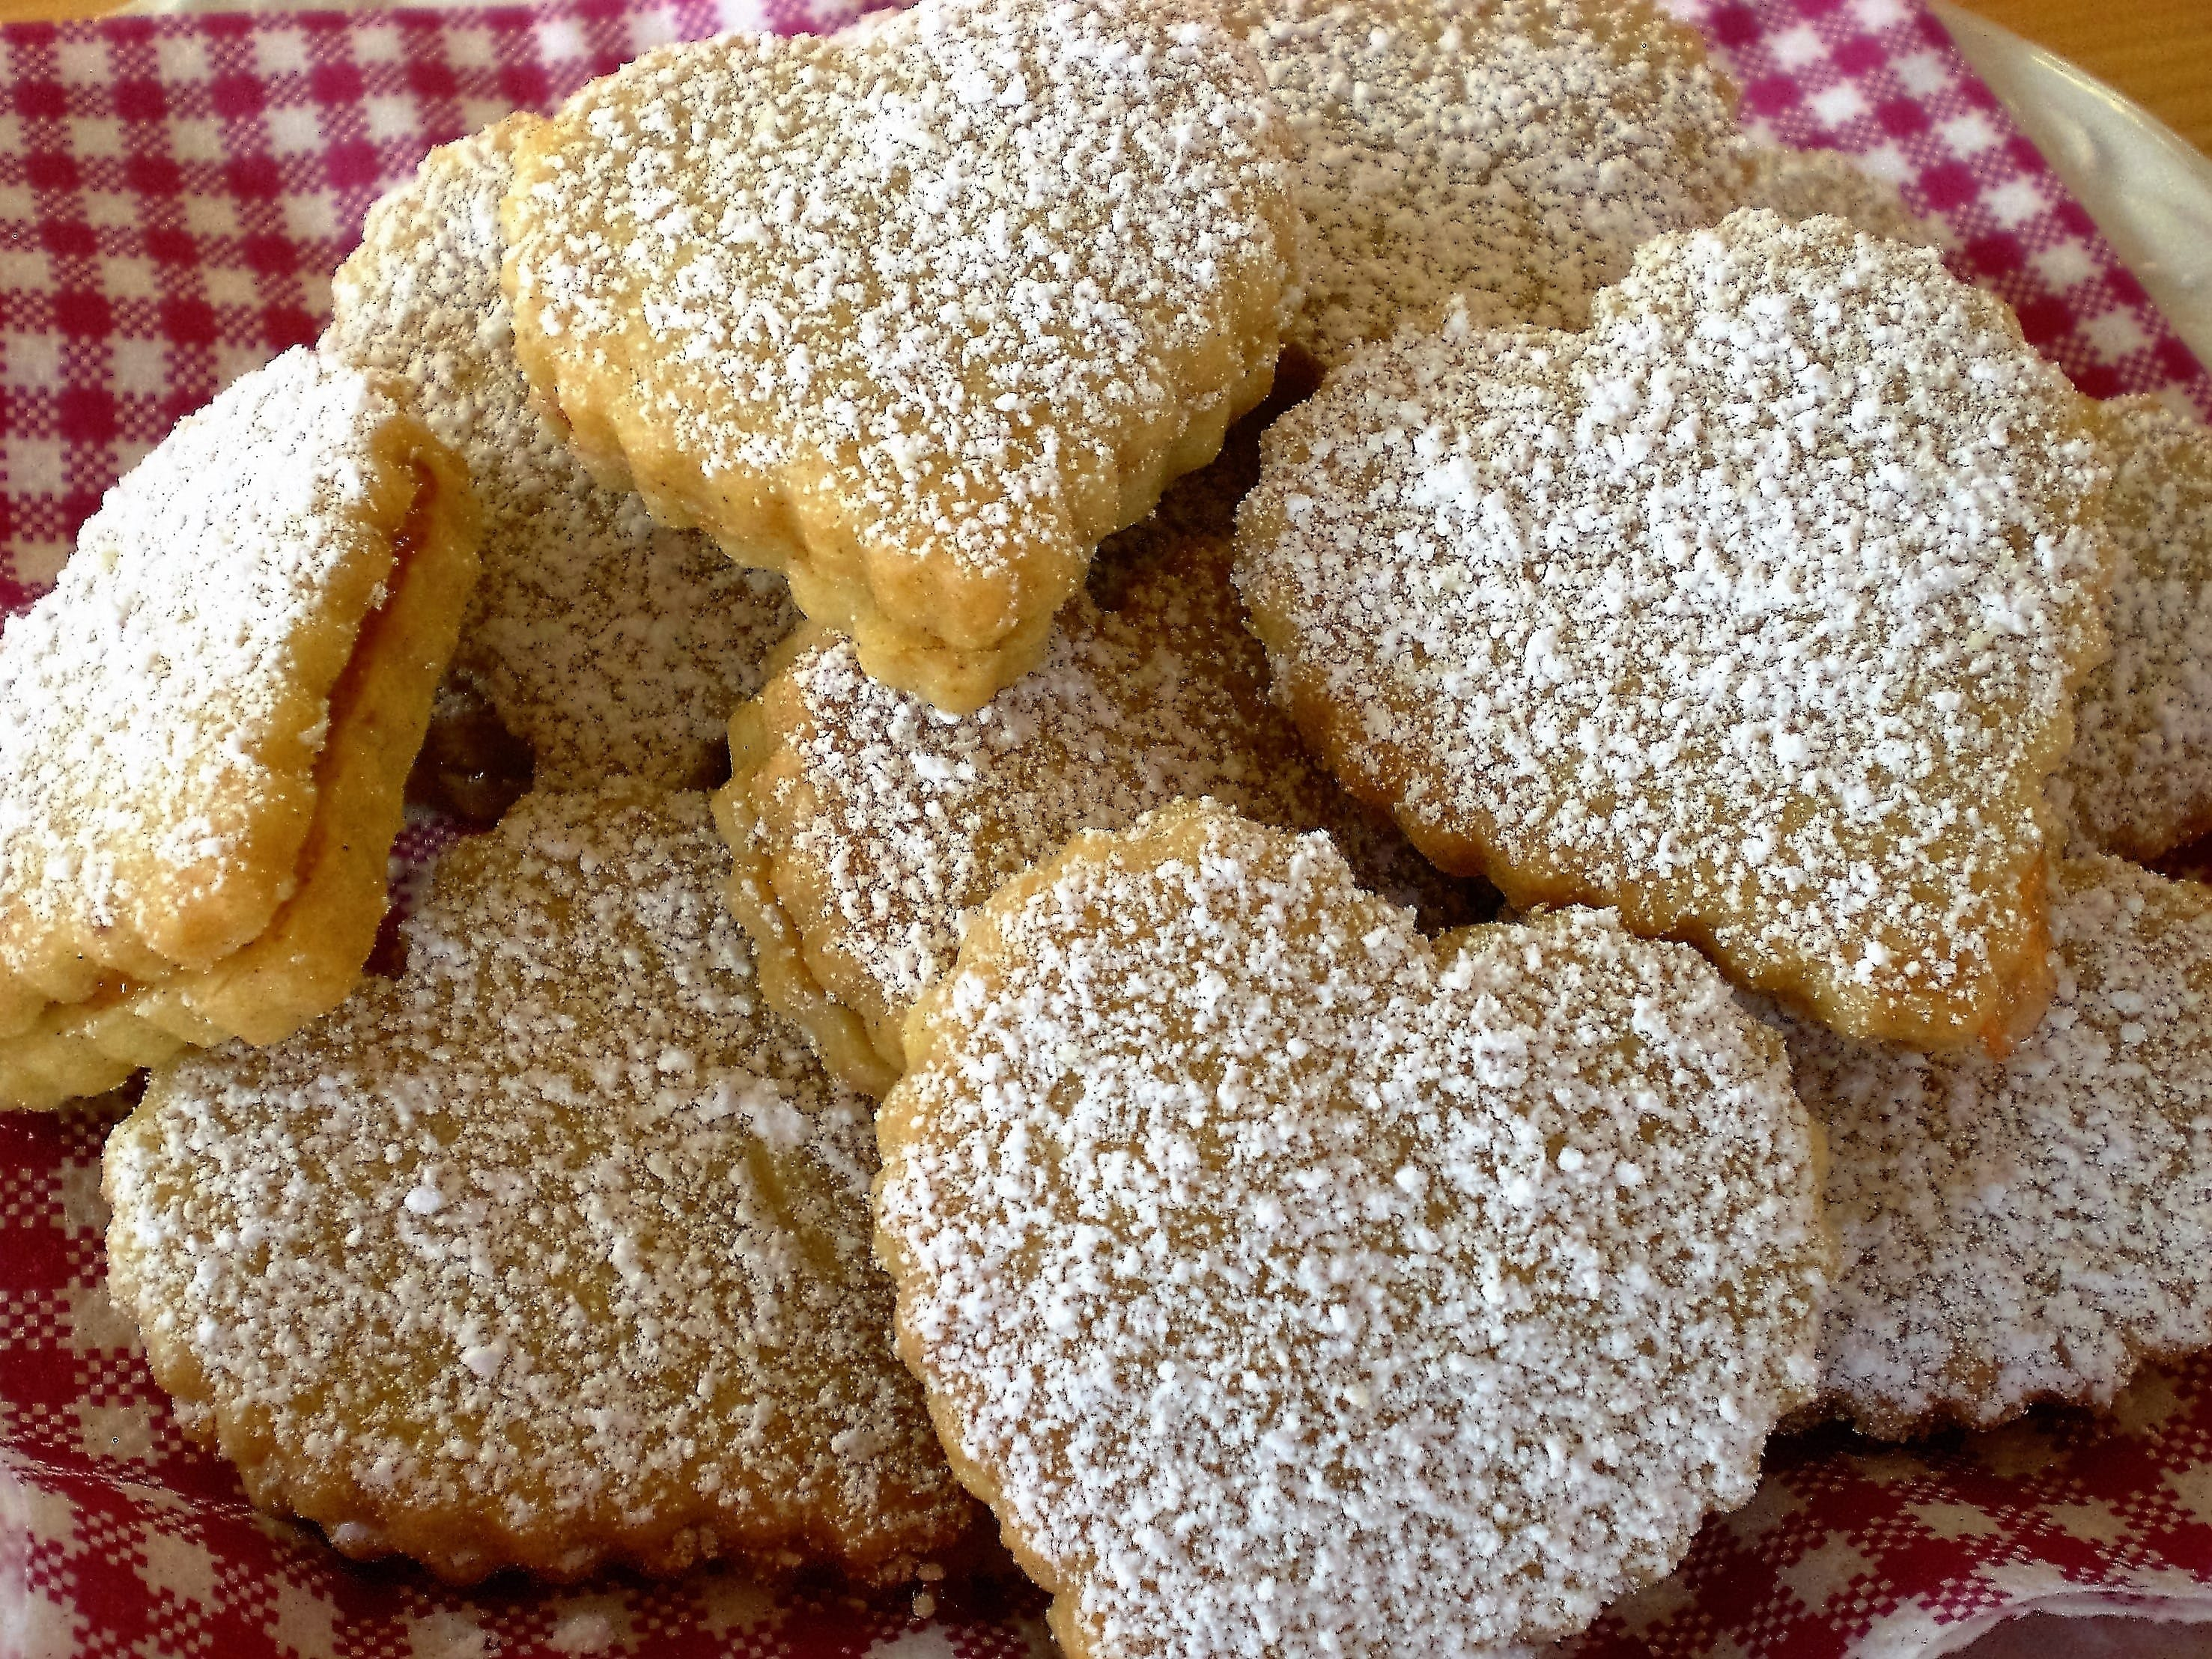 Baked Biscuits on Top of Textile